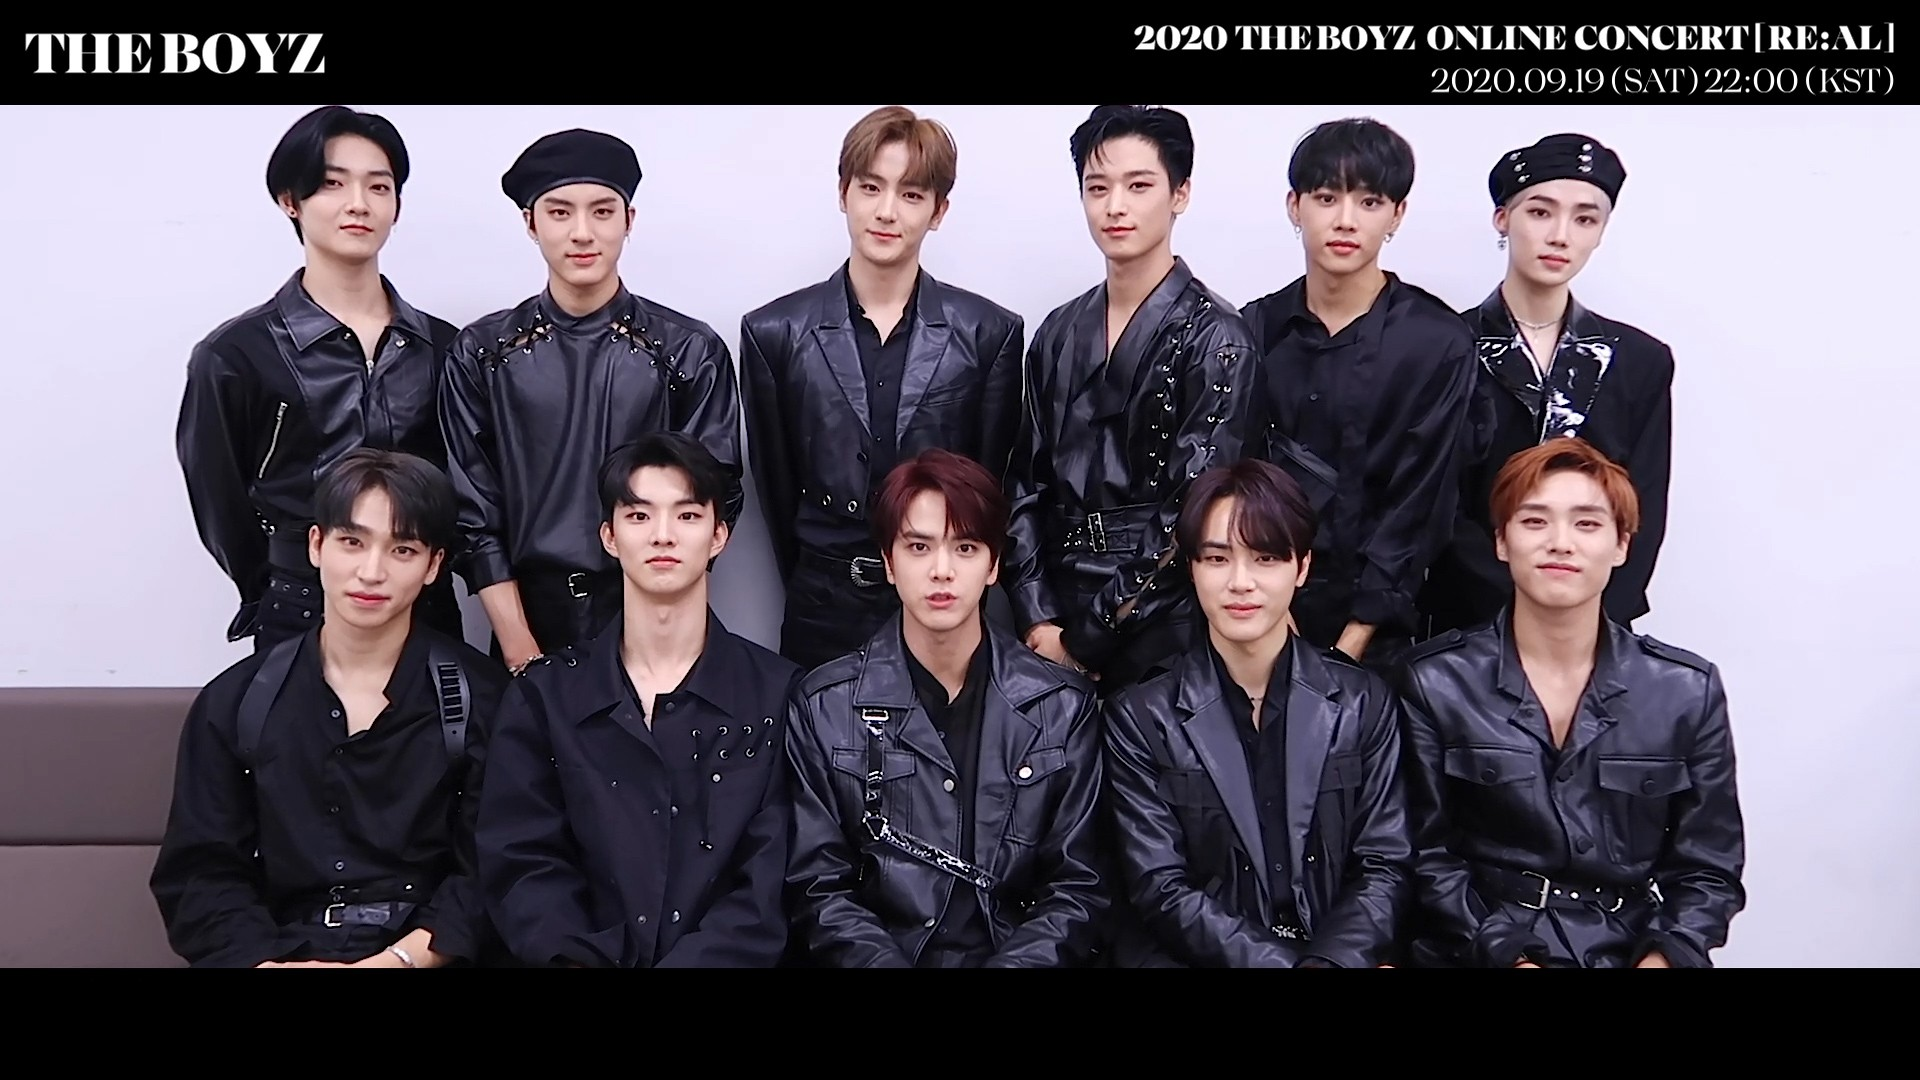 2020 THE BOYZ ONLINE CONCERT [RE:AL] INVITATION MESSAGE